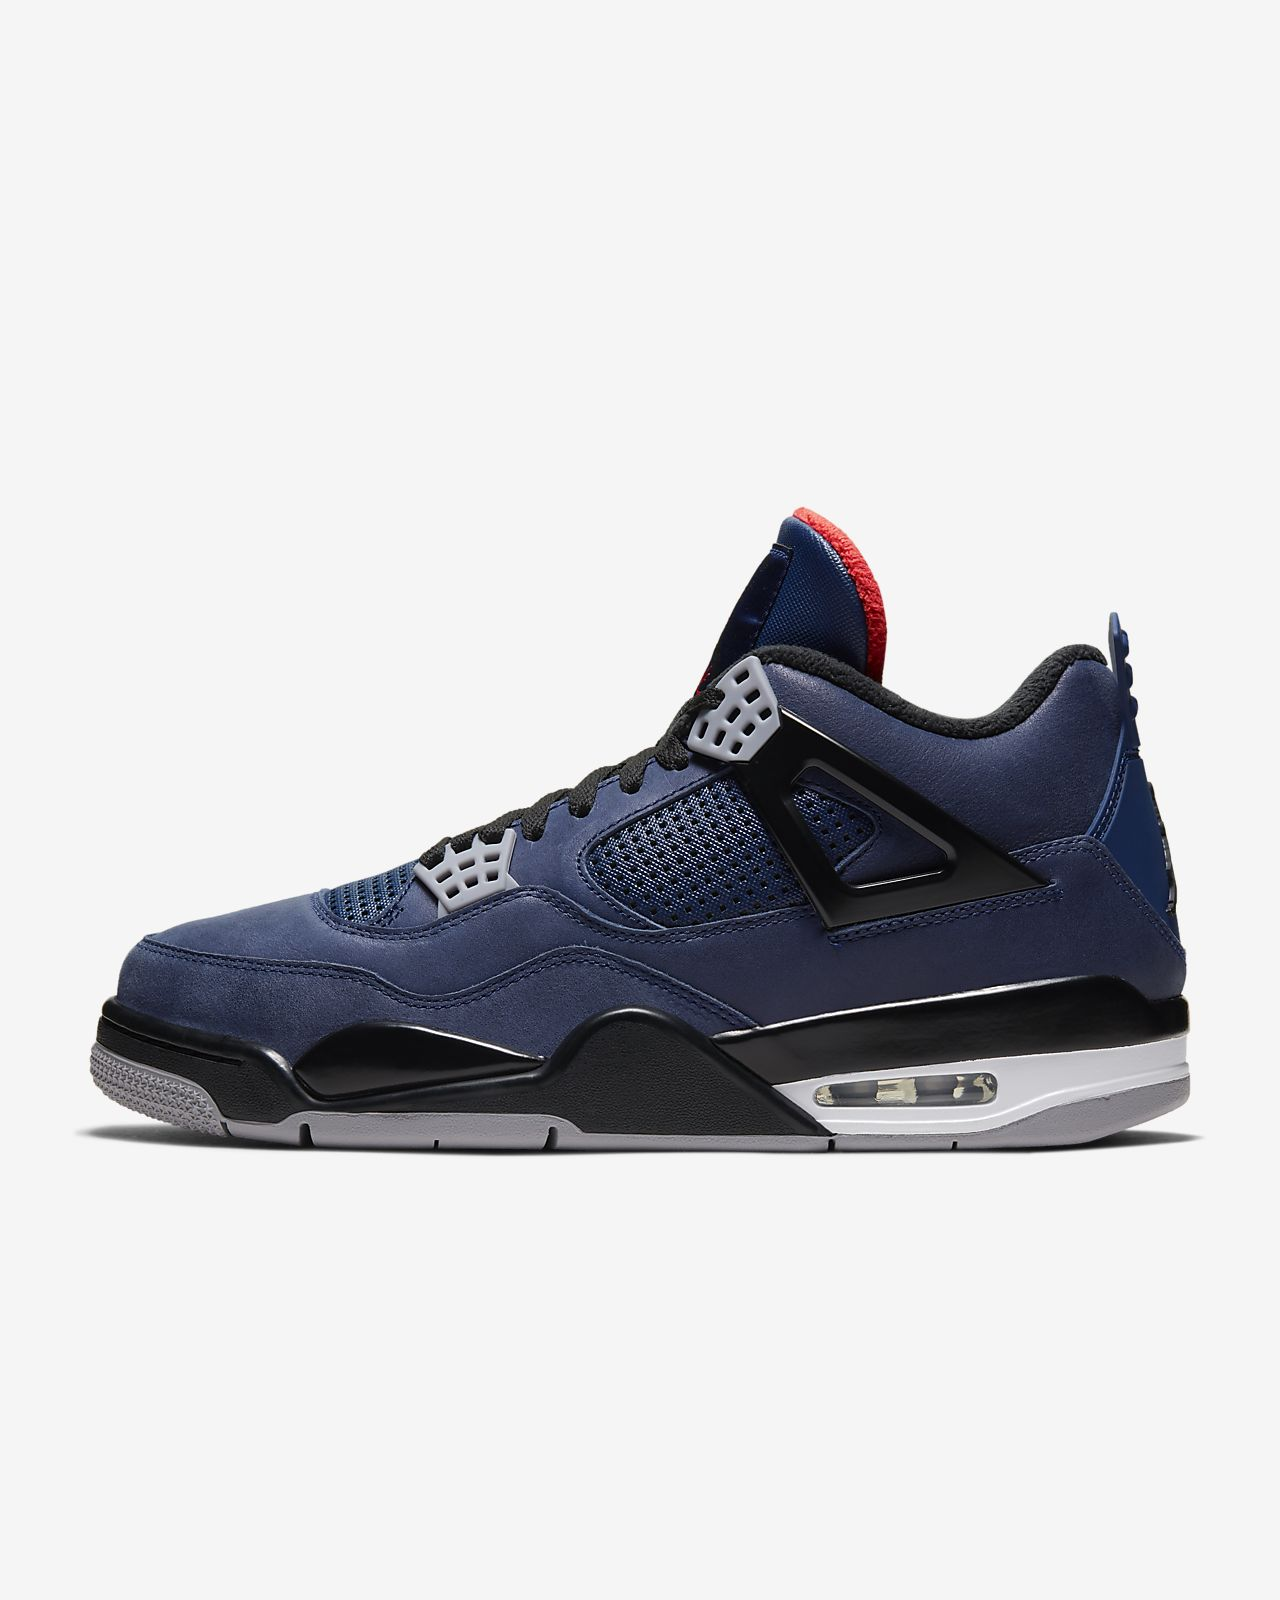 Air Jordan 4 Retro WNTR Shoe